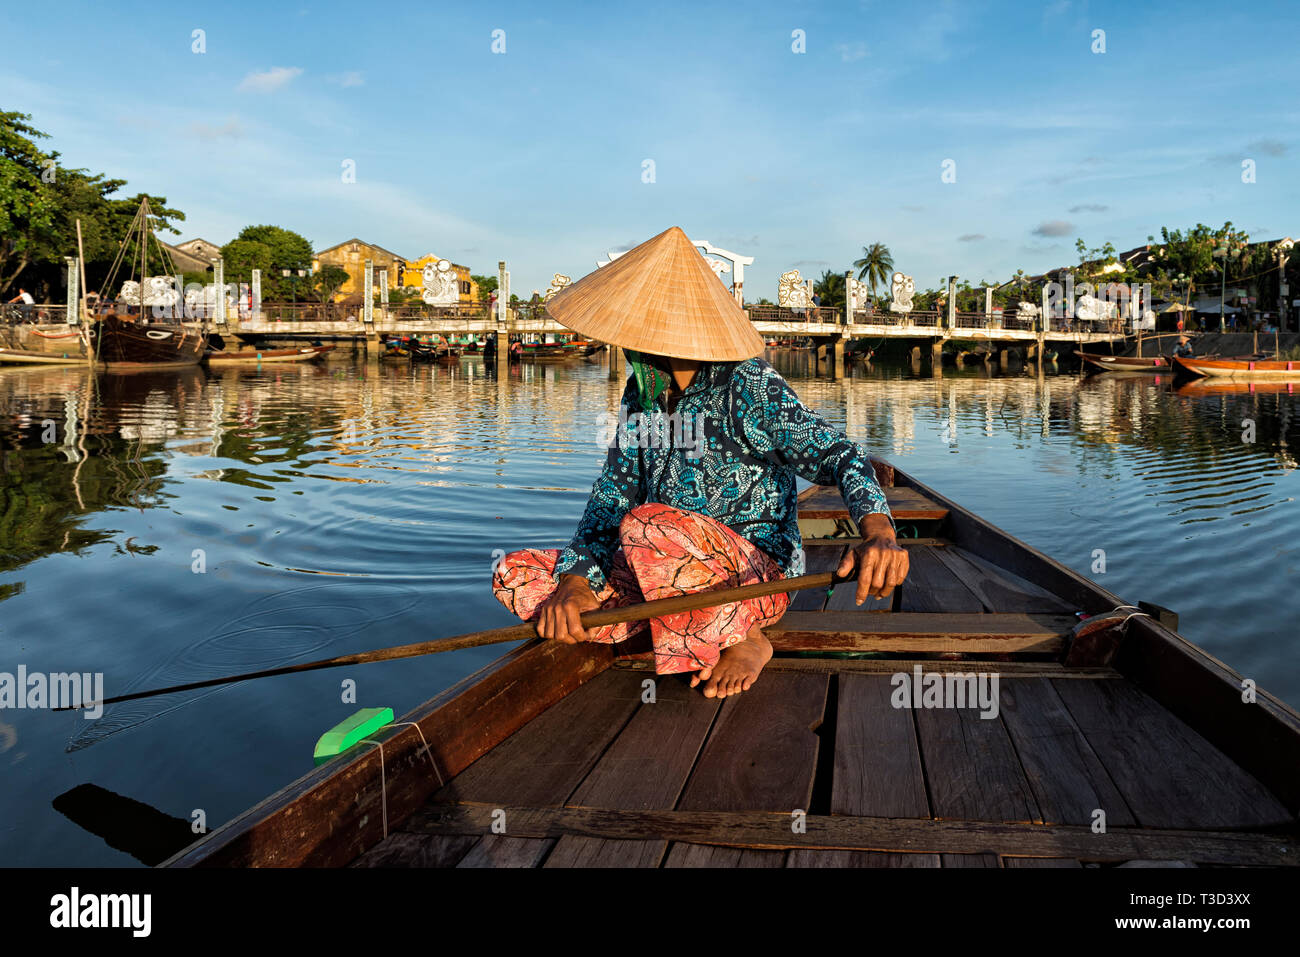 Vietnamese woman with colourful clothes on her boat with Cau An Hoi Bridge in the background - Stock Image